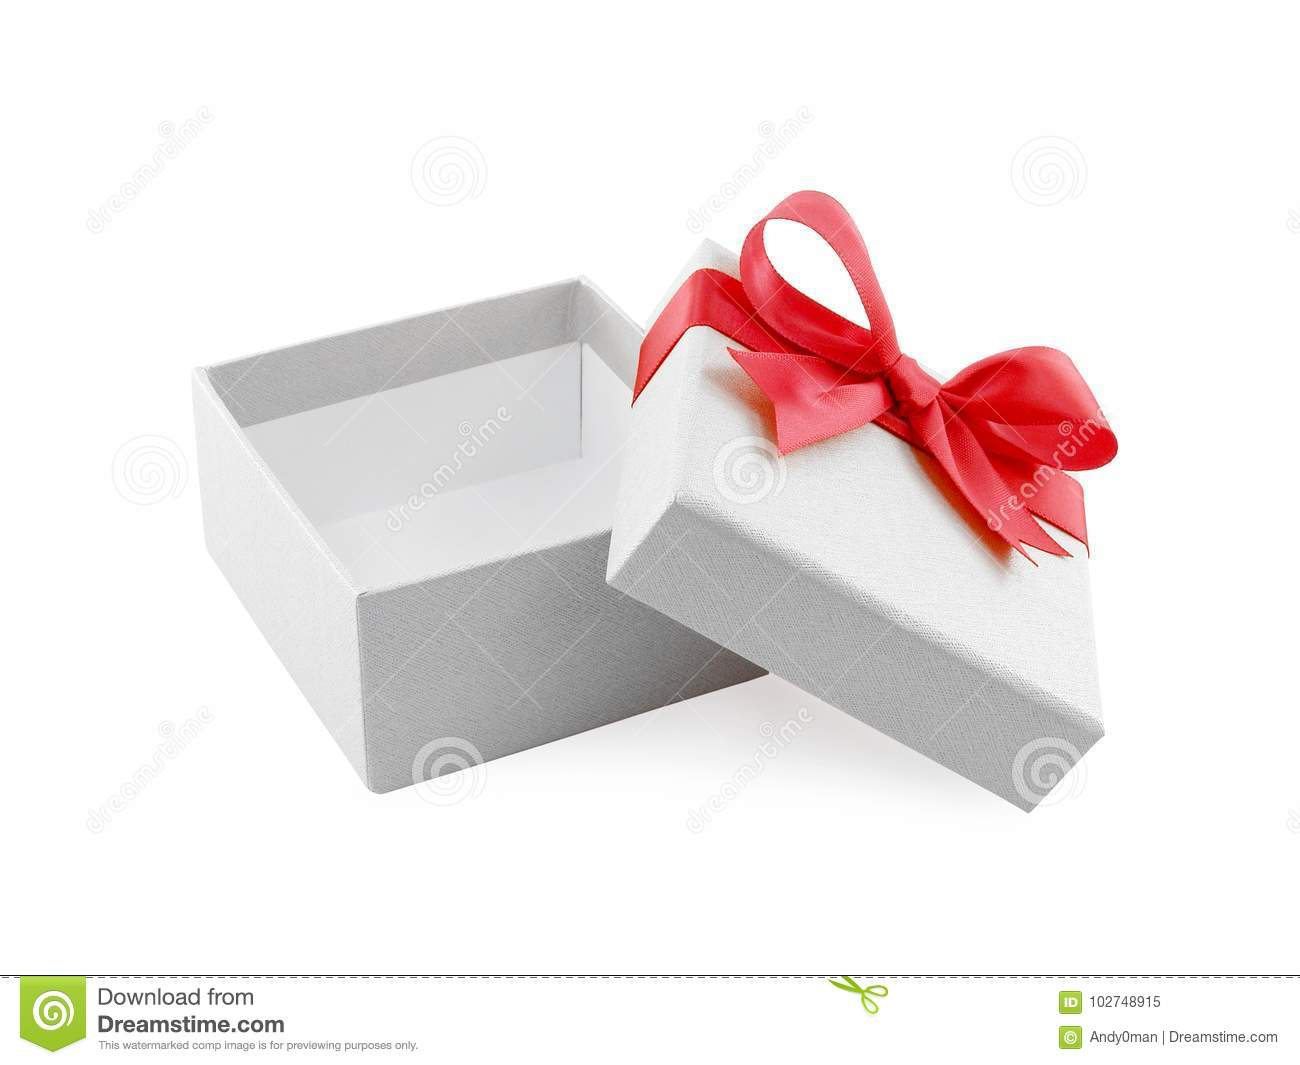 open and empty single white gift box with simple red ribbon bow wrapped around the lid isolated on white background